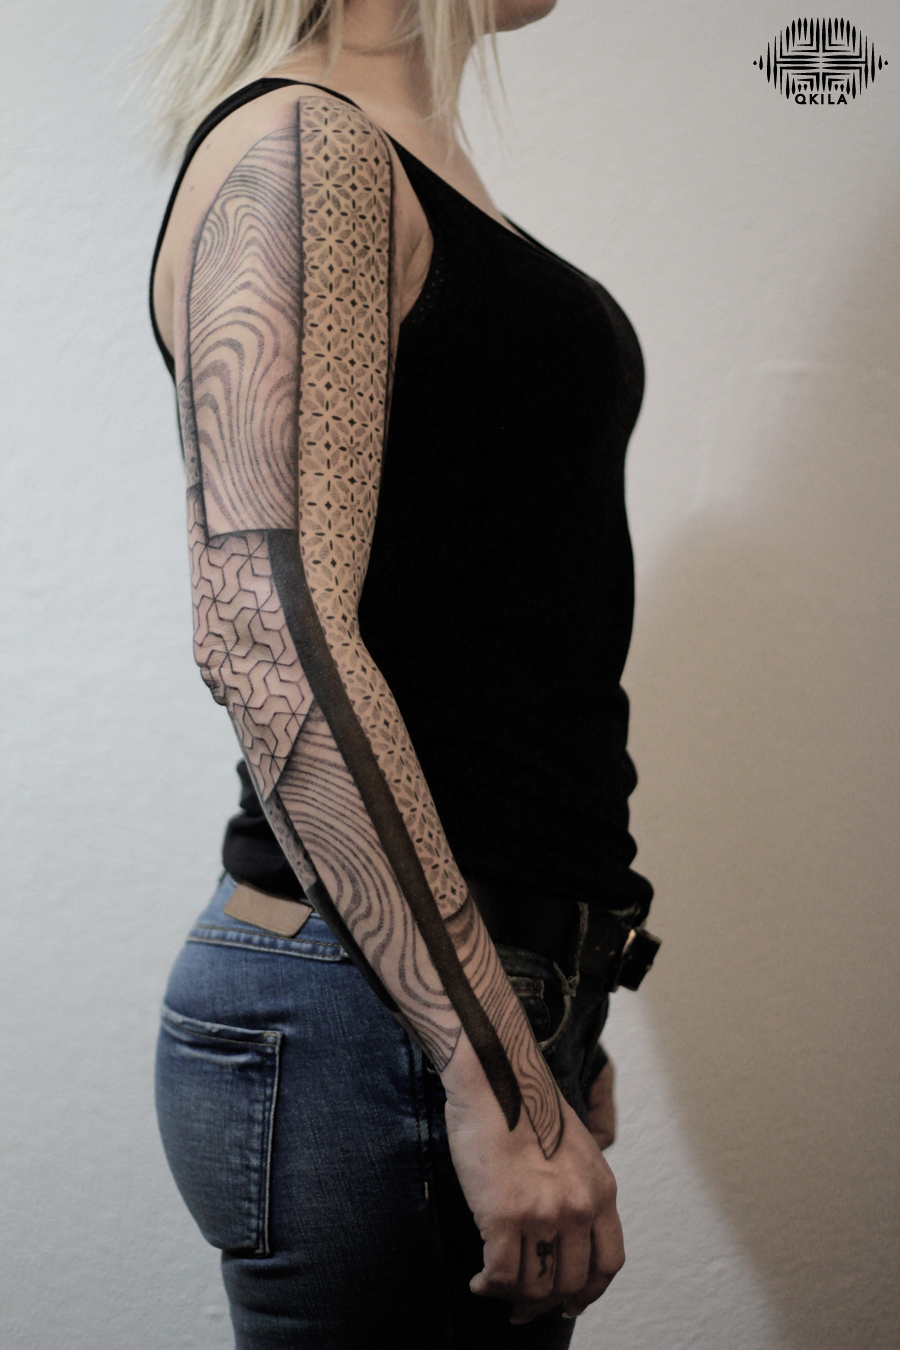 lyon sleeve  tattoo ,nimes,black,patterns tattoo,op art, sleeves tattoo, dotwork tattoo, qkila,geometric tattoo, ethnique tattoo, les tatoués anonymes, nimes